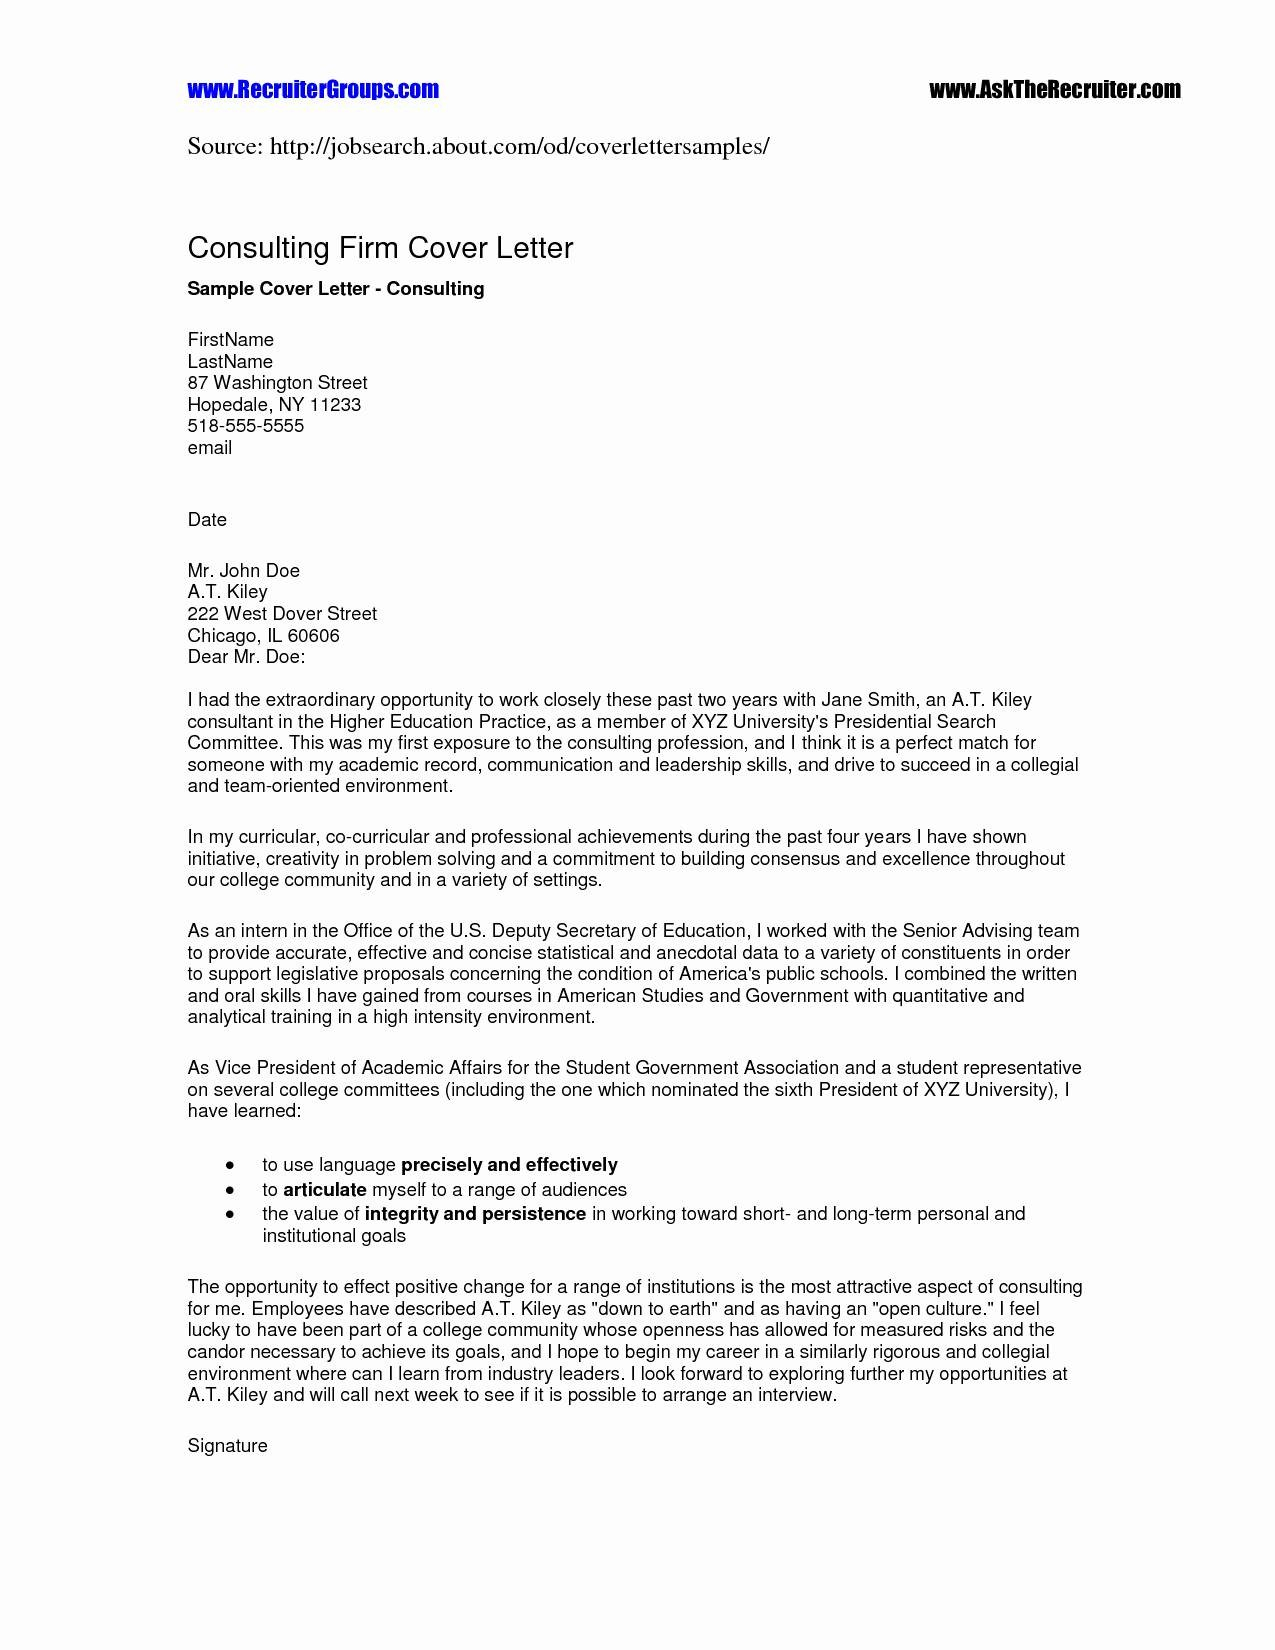 Impressive Cover Letter Template - Cover Letter Template Uk It Save Email Cover Letter Template Uk